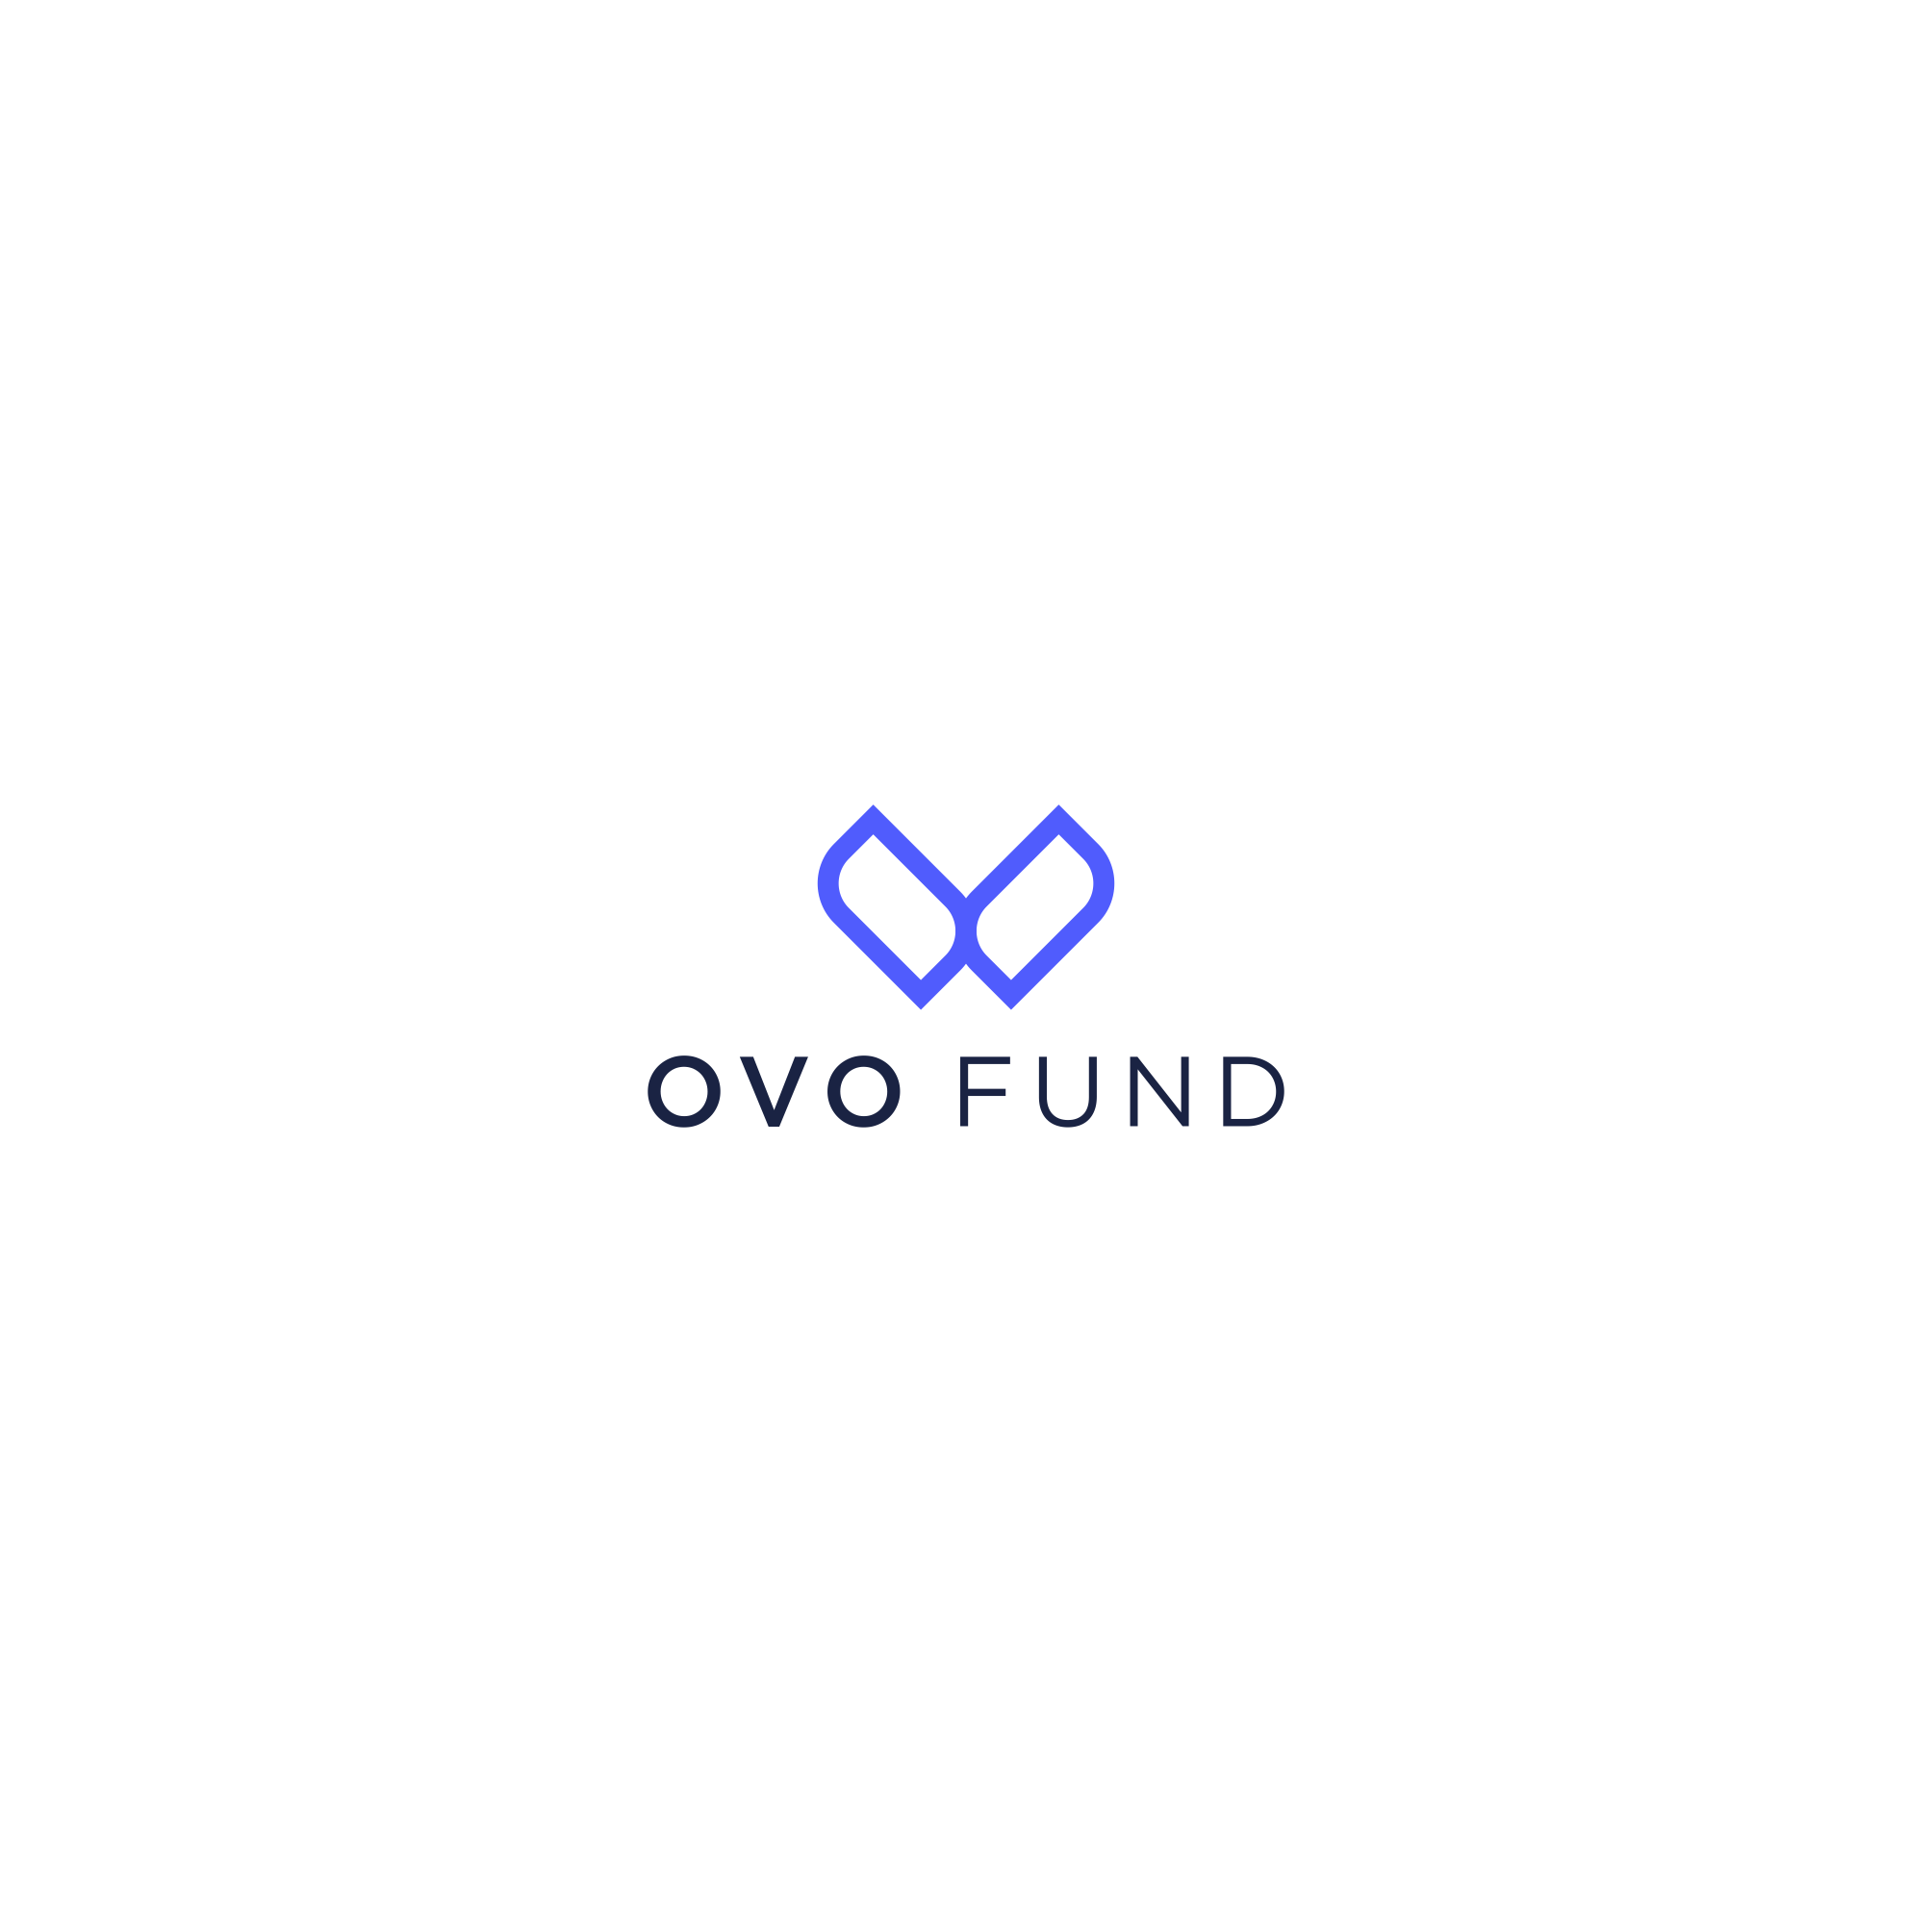 Design a cool, minimal logo for a founder-friendly venture capital firm